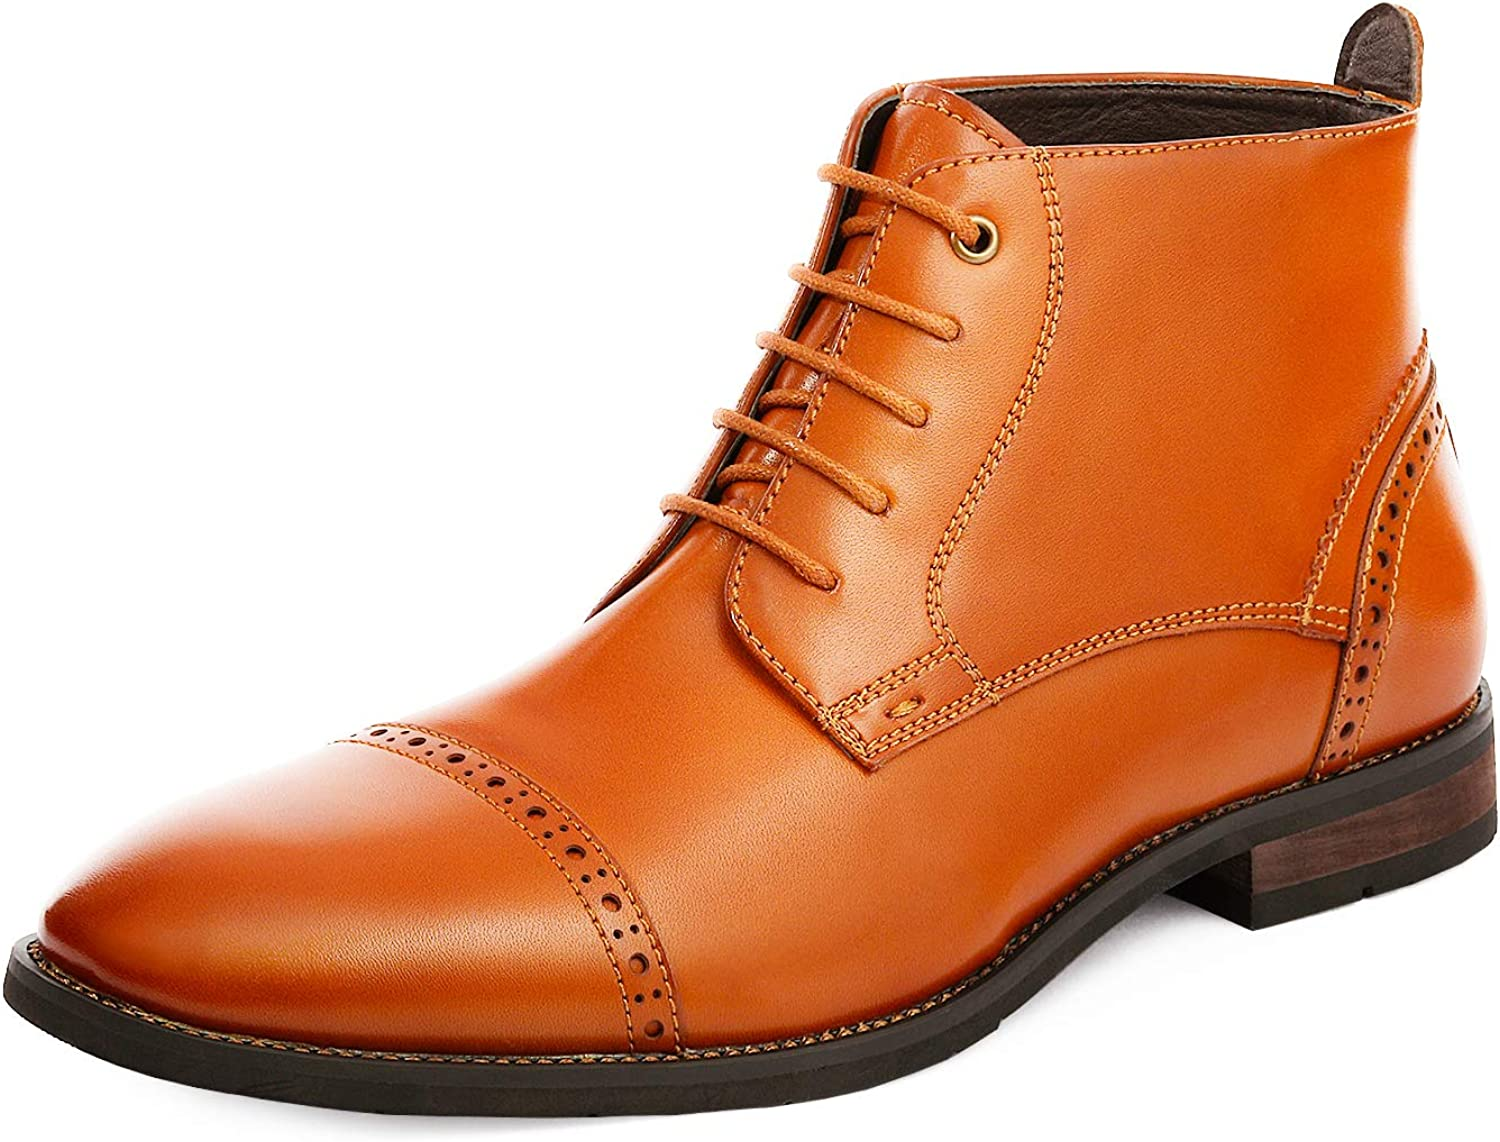   Bruno Marc Men's Dress Ankle Boots Cap Toe Oxford Boot   Oxford & Derby